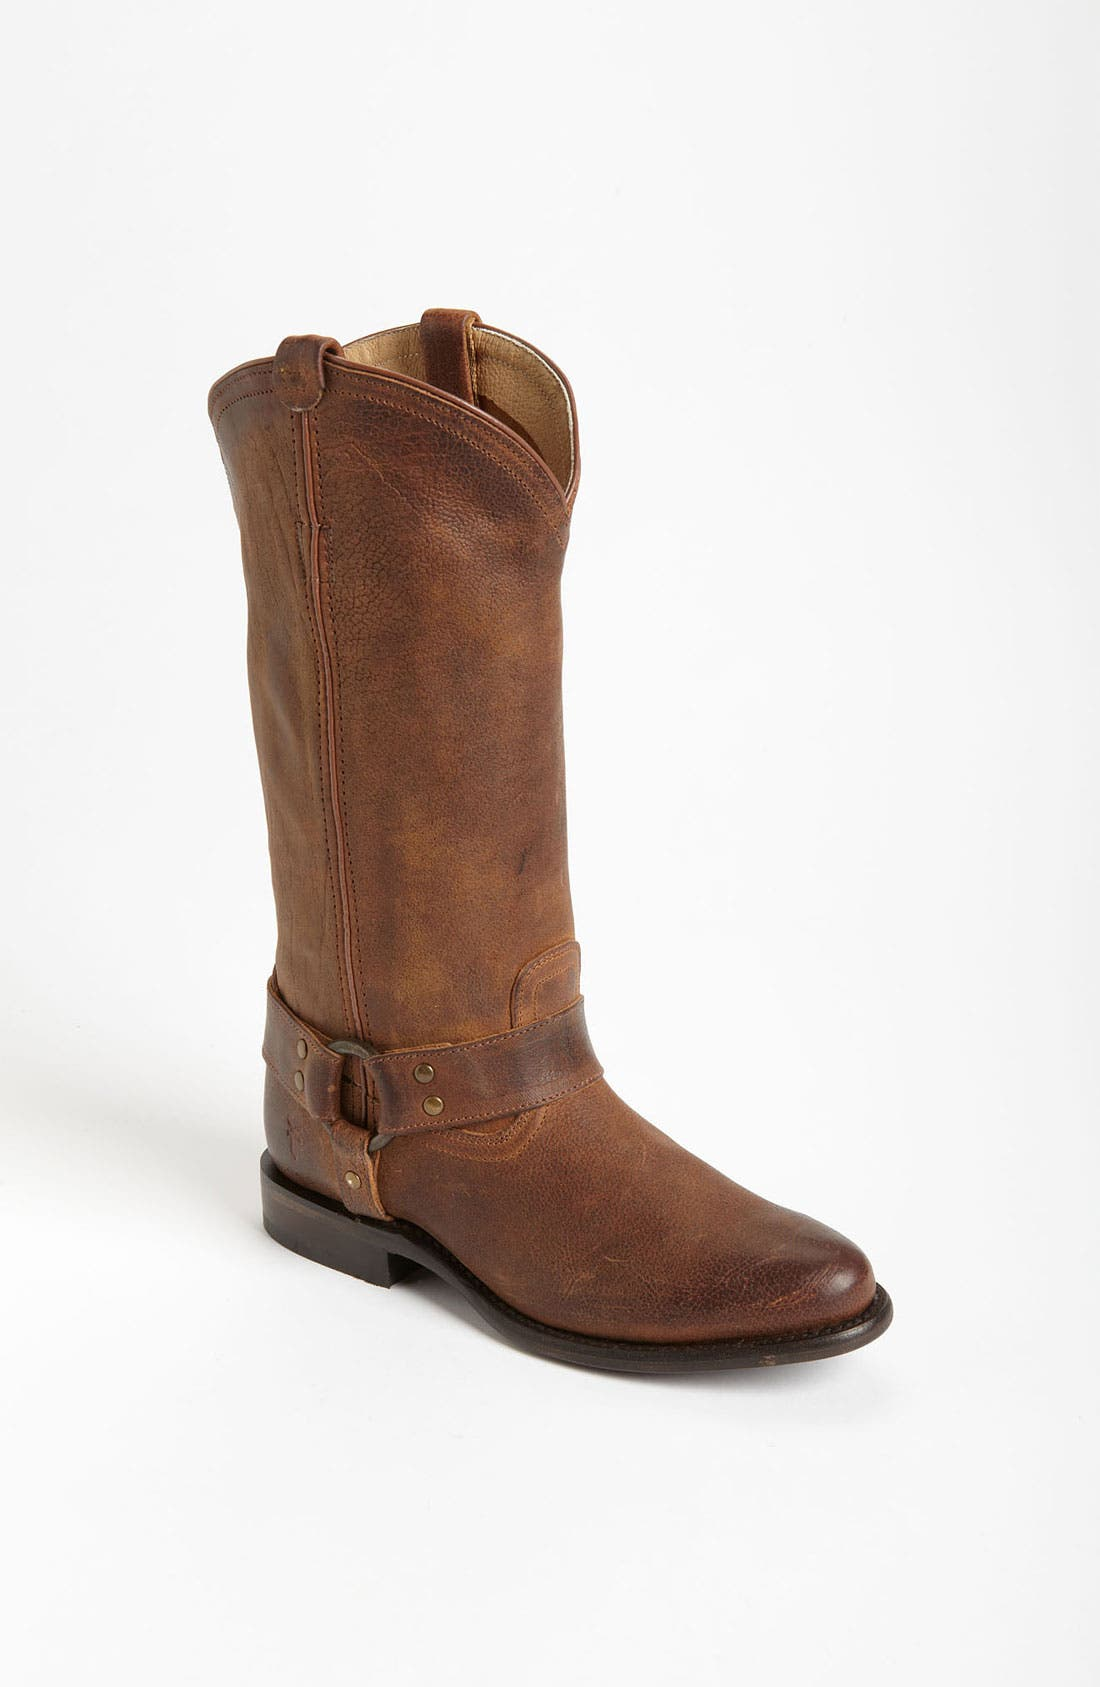 Alternate Image 1 Selected - Frye 'Wyatt' Harness Boot